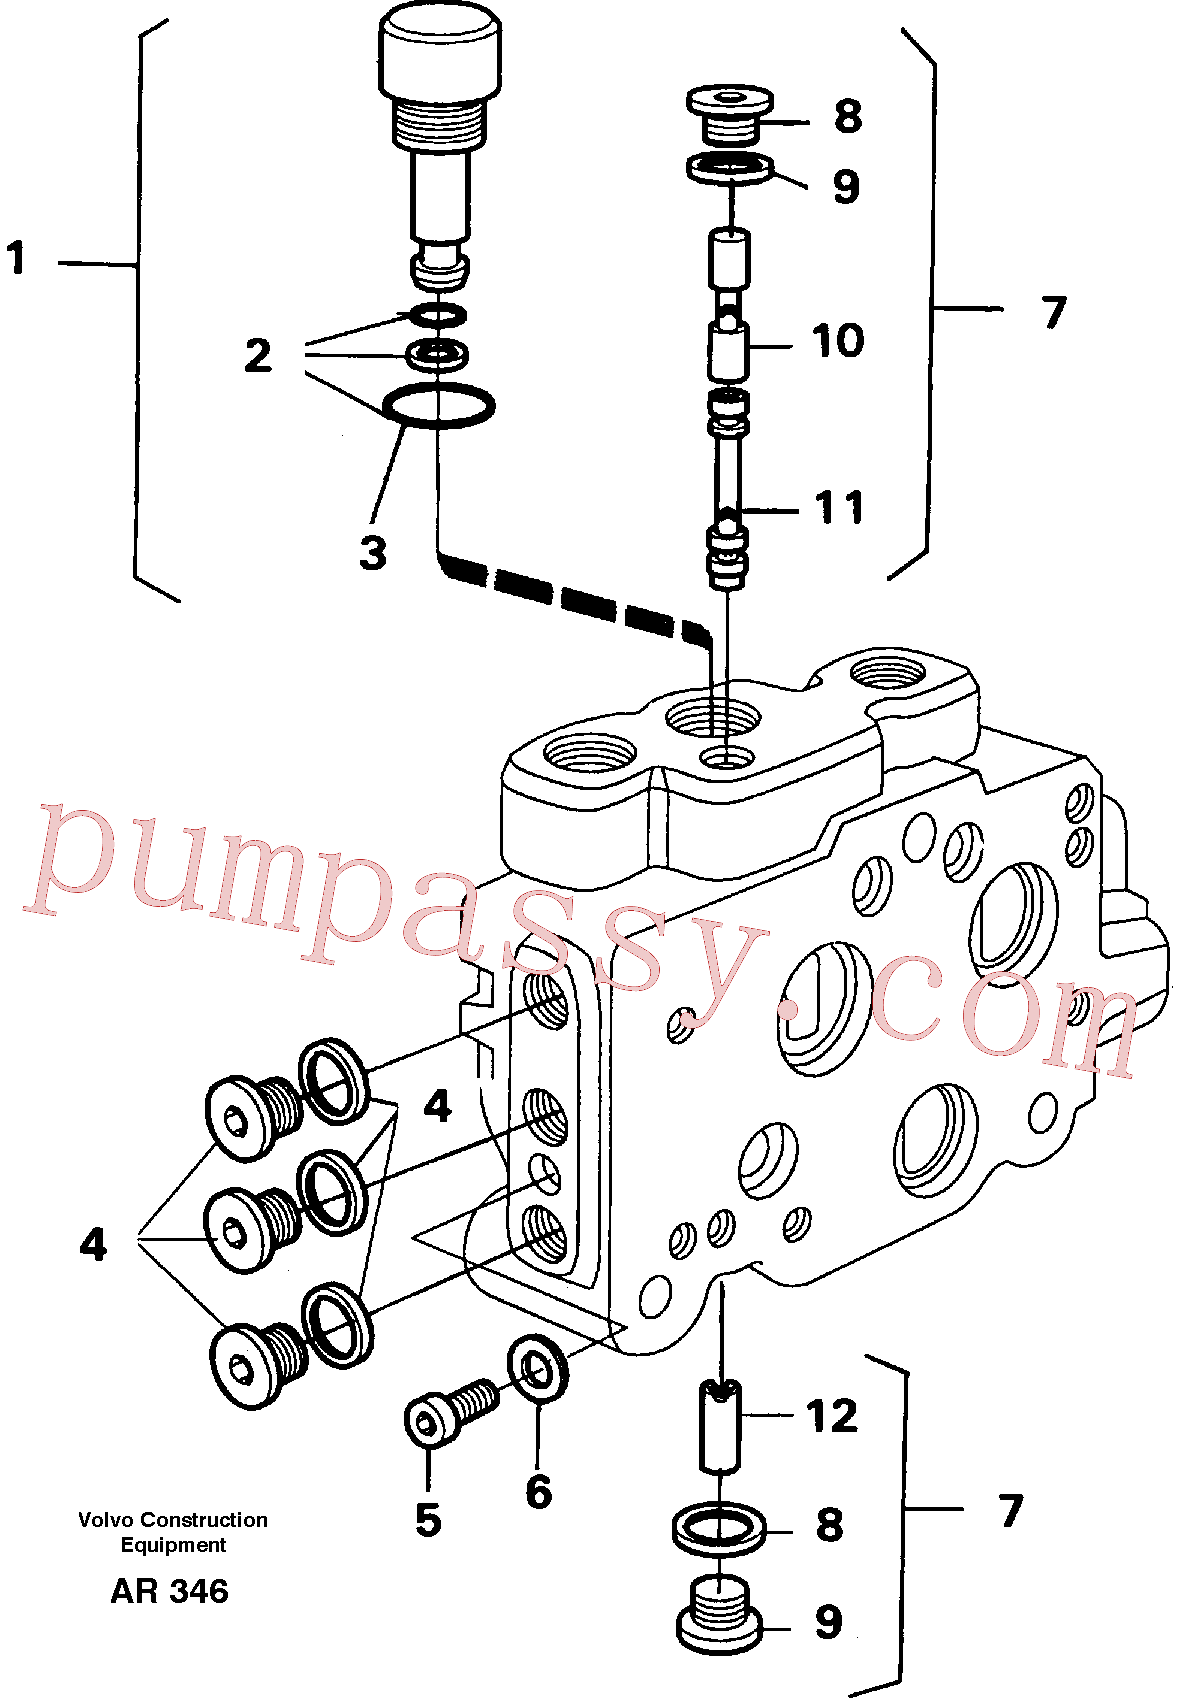 VOE11999447 for Volvo Valve section(AR346 assembly)